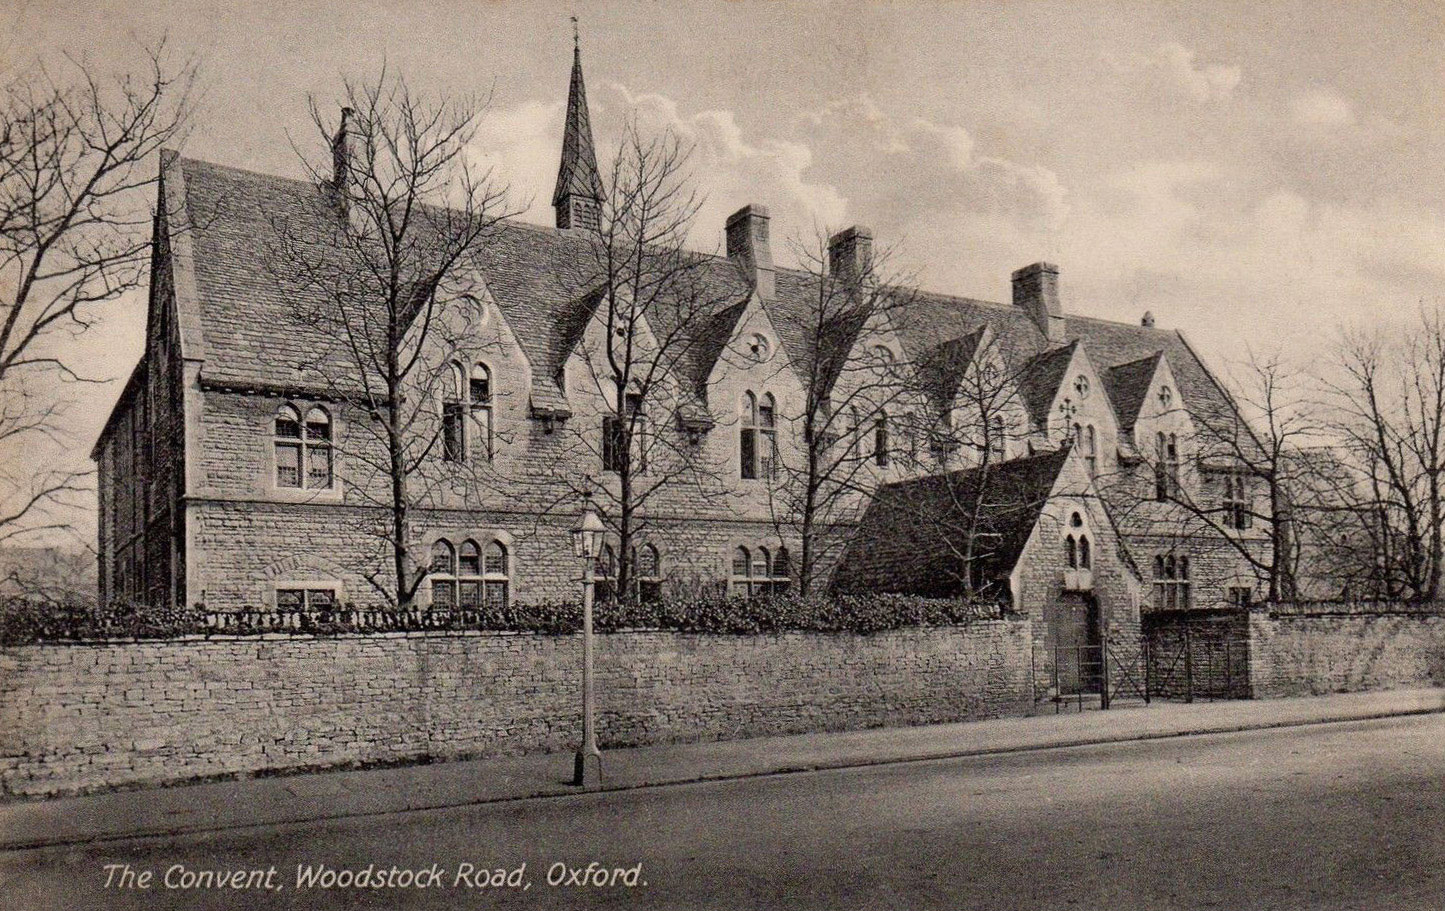 Convent, Woodstock Road